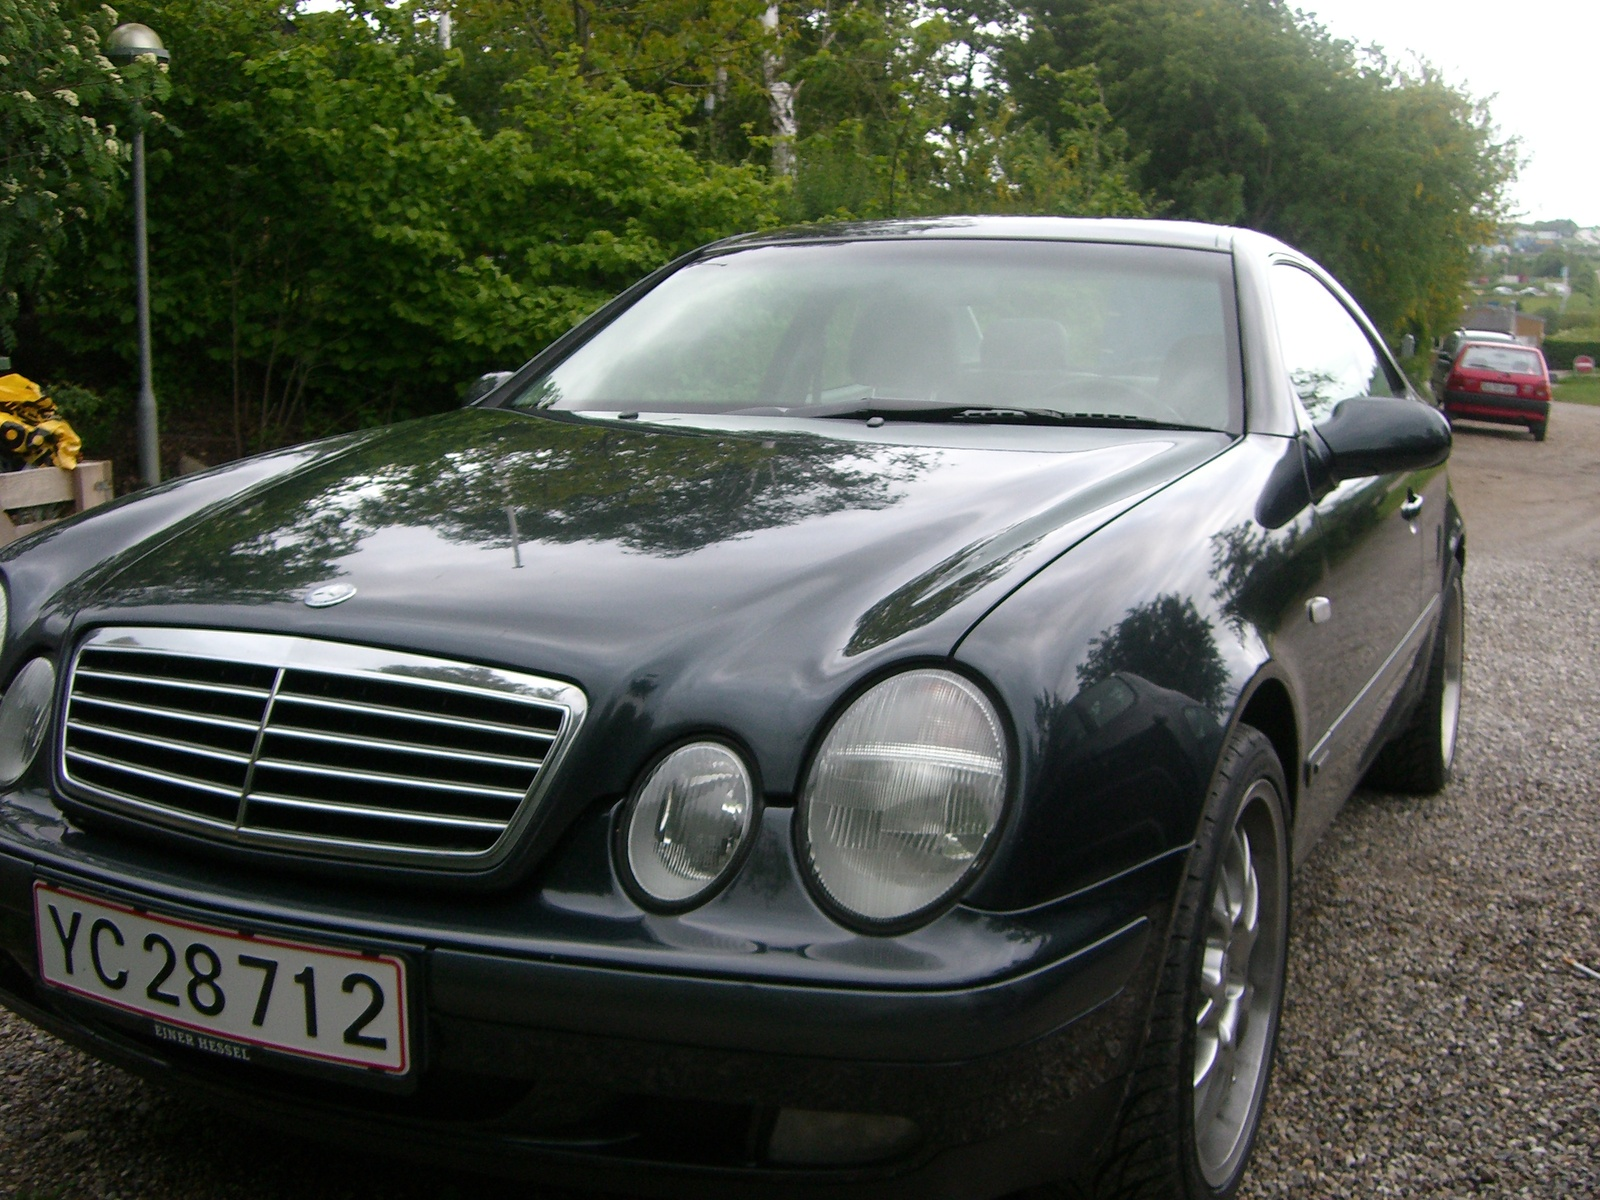 1999 Mercedes CLK 320 Review http://www.pic2fly.com/2000-Mercedes-CLK-320-Reviews.html